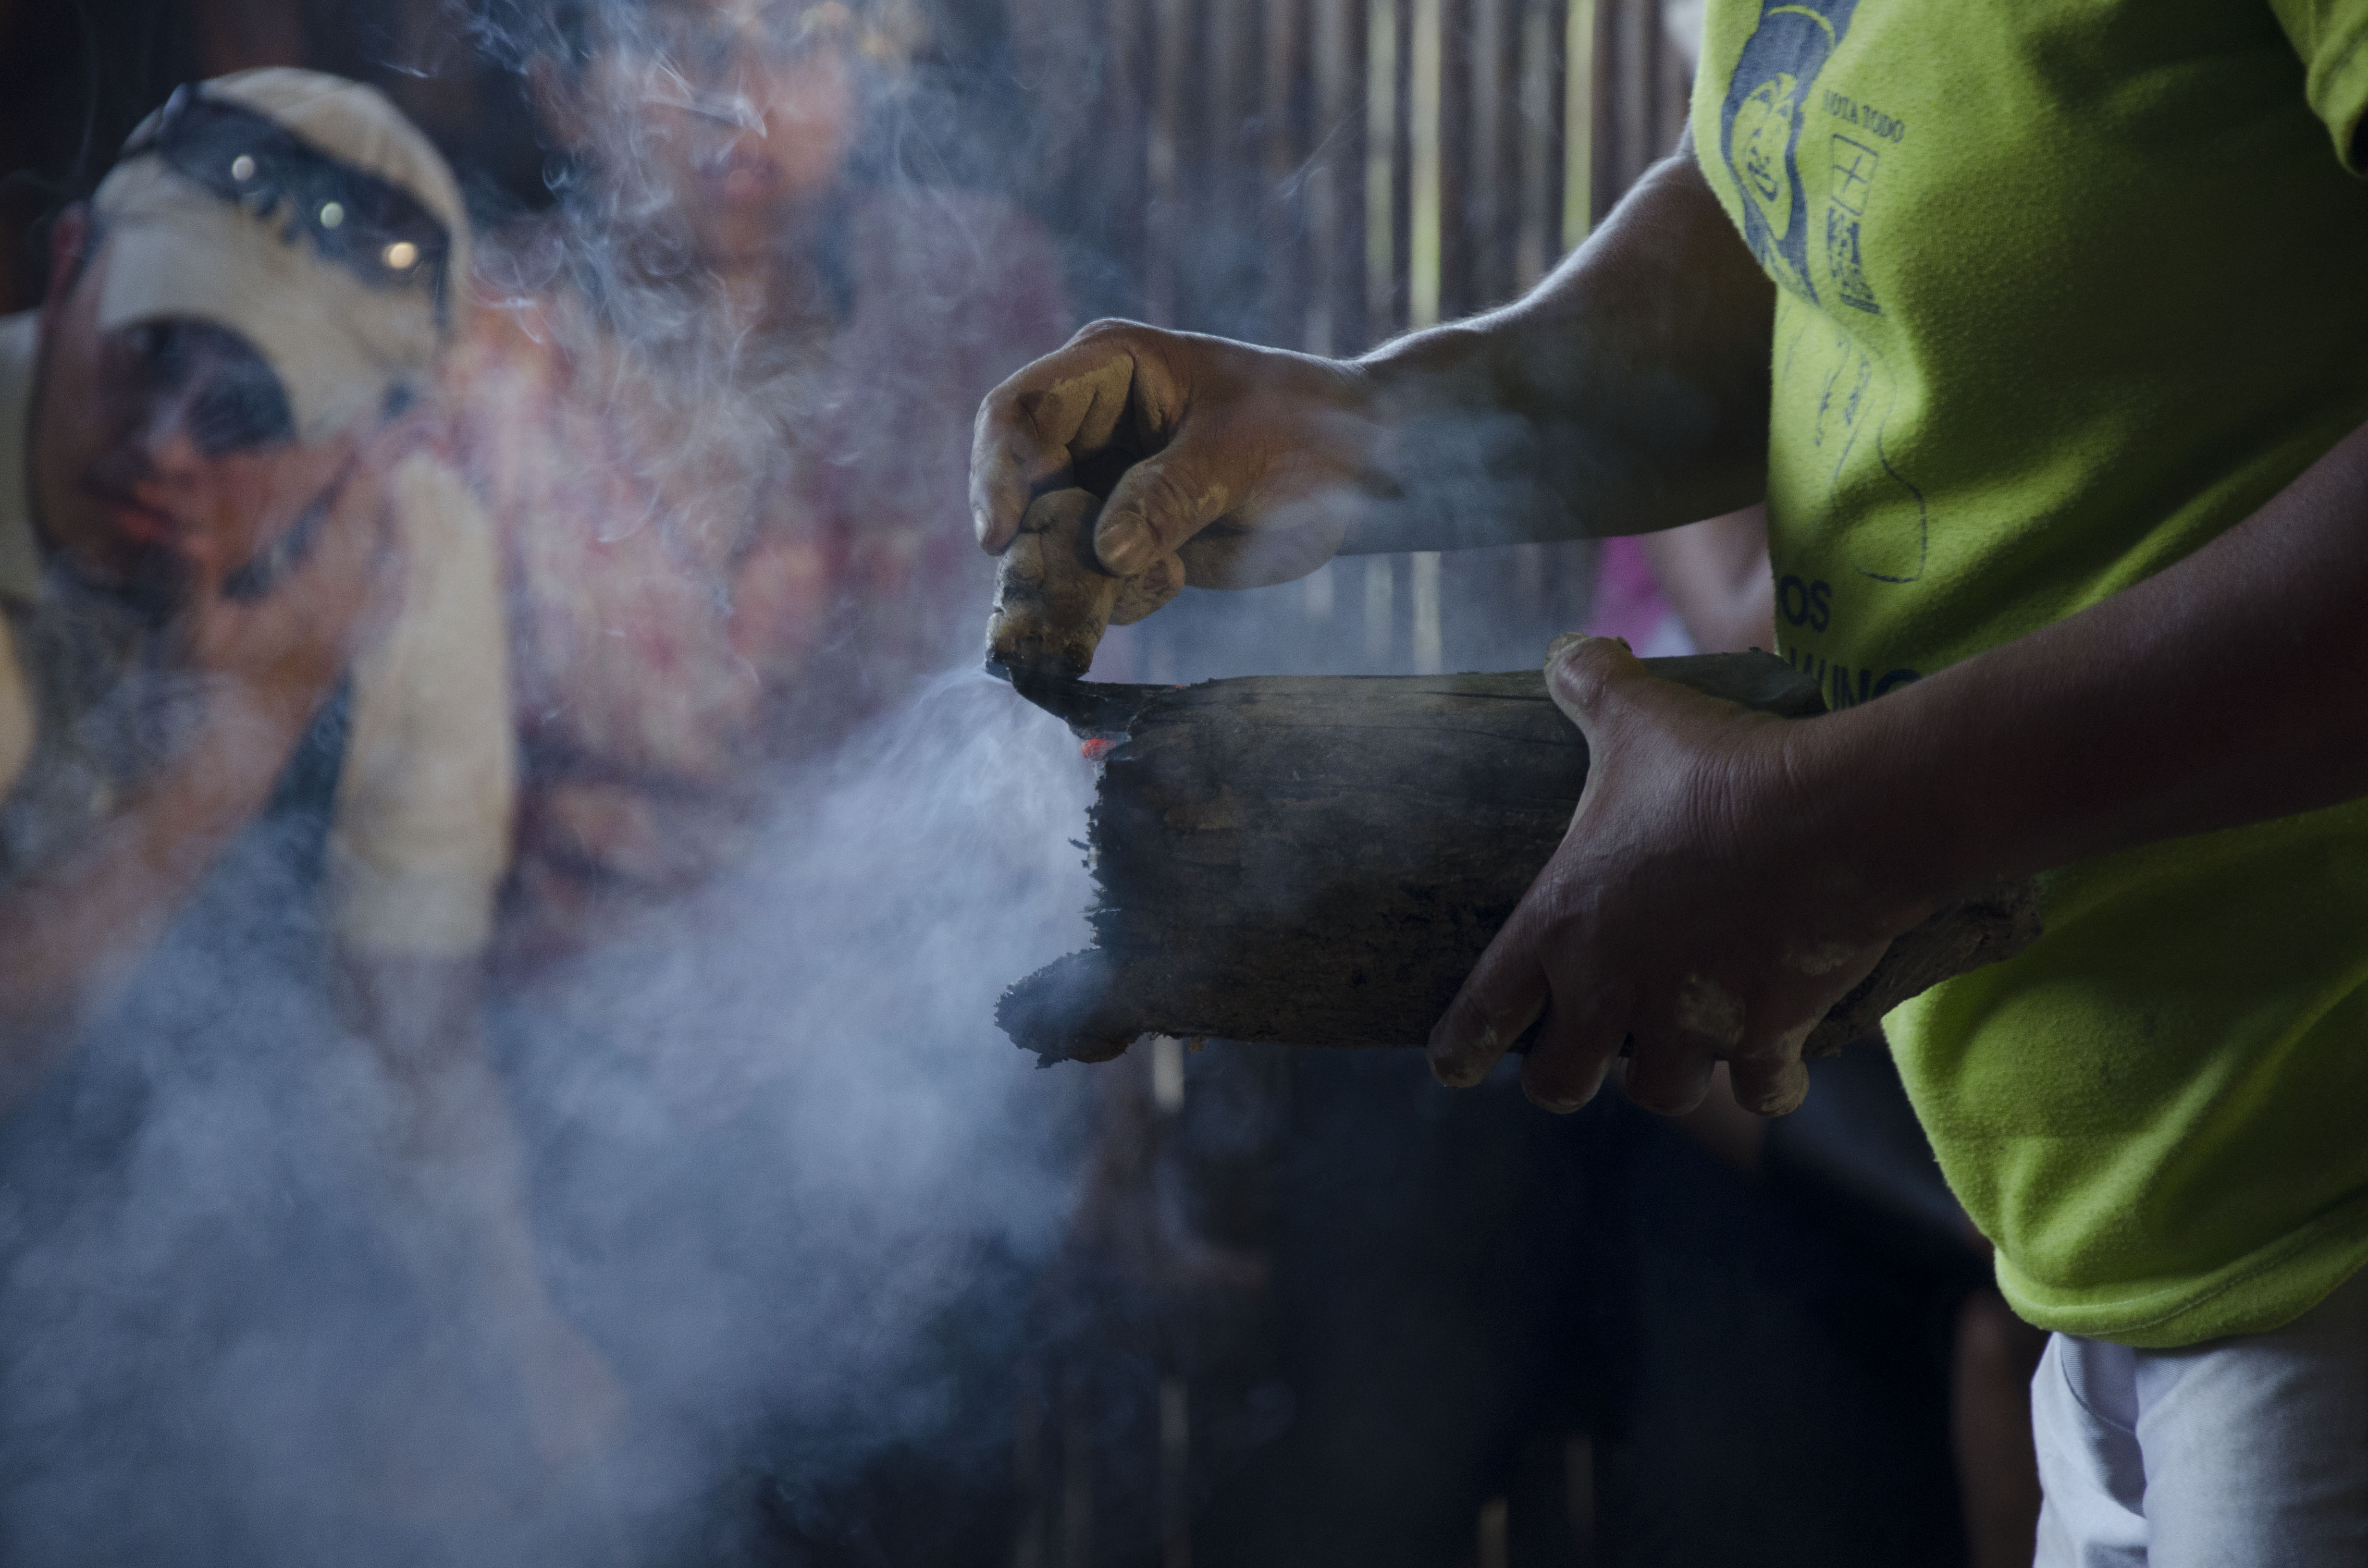 A small piece of wood is heated to release the natural resin which is then applied to the burnished pot.